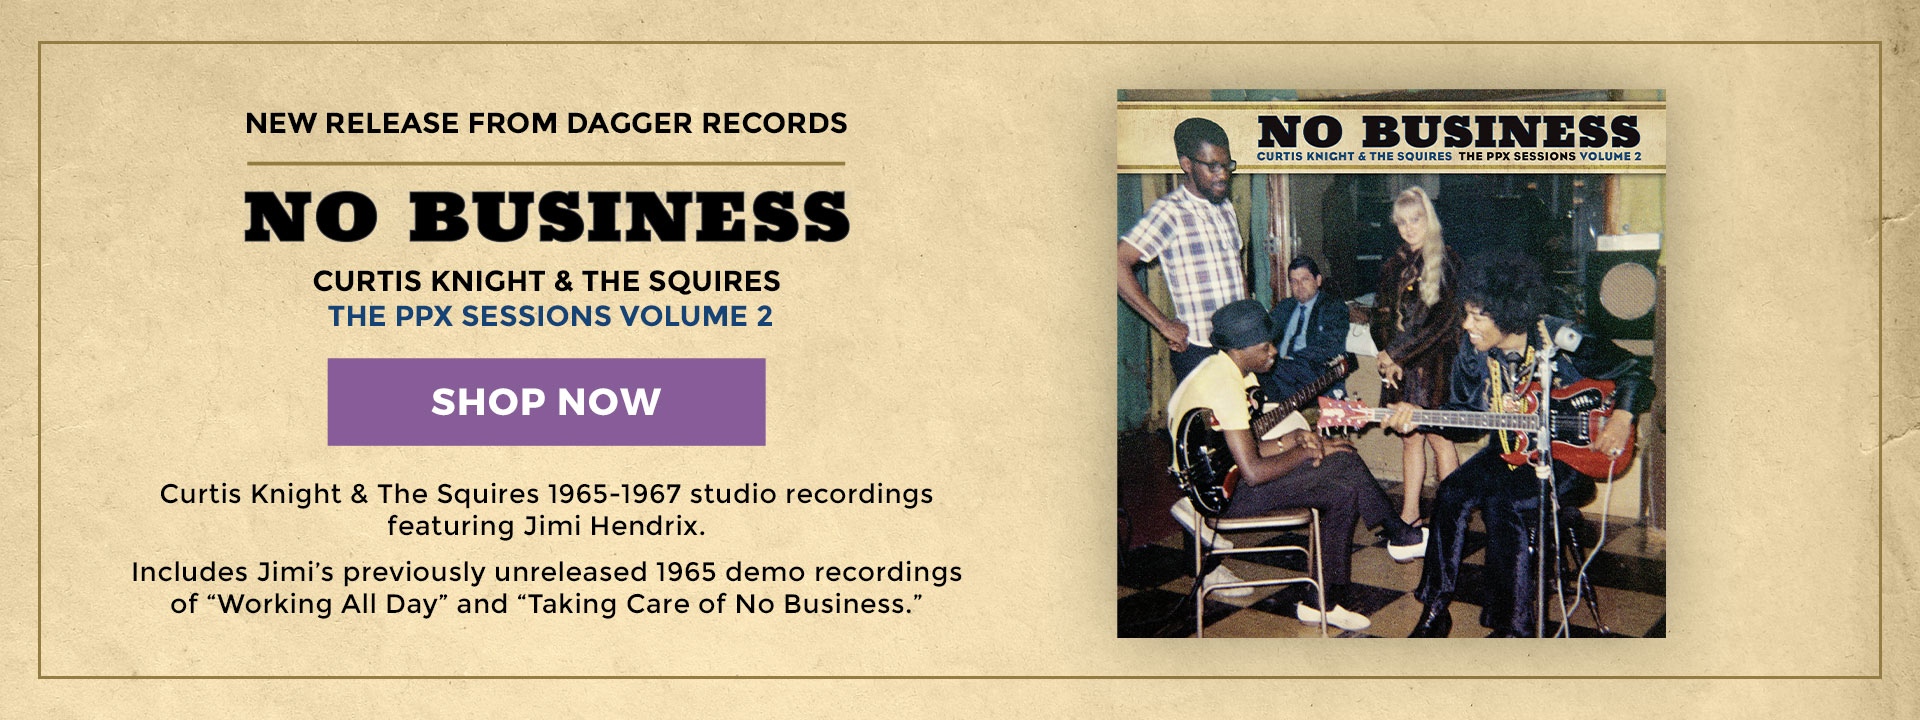 New Release From Dagger Records | No Business: Curtis Knight & The Squires The PPX Sessions Volume 2 | Shop Now!